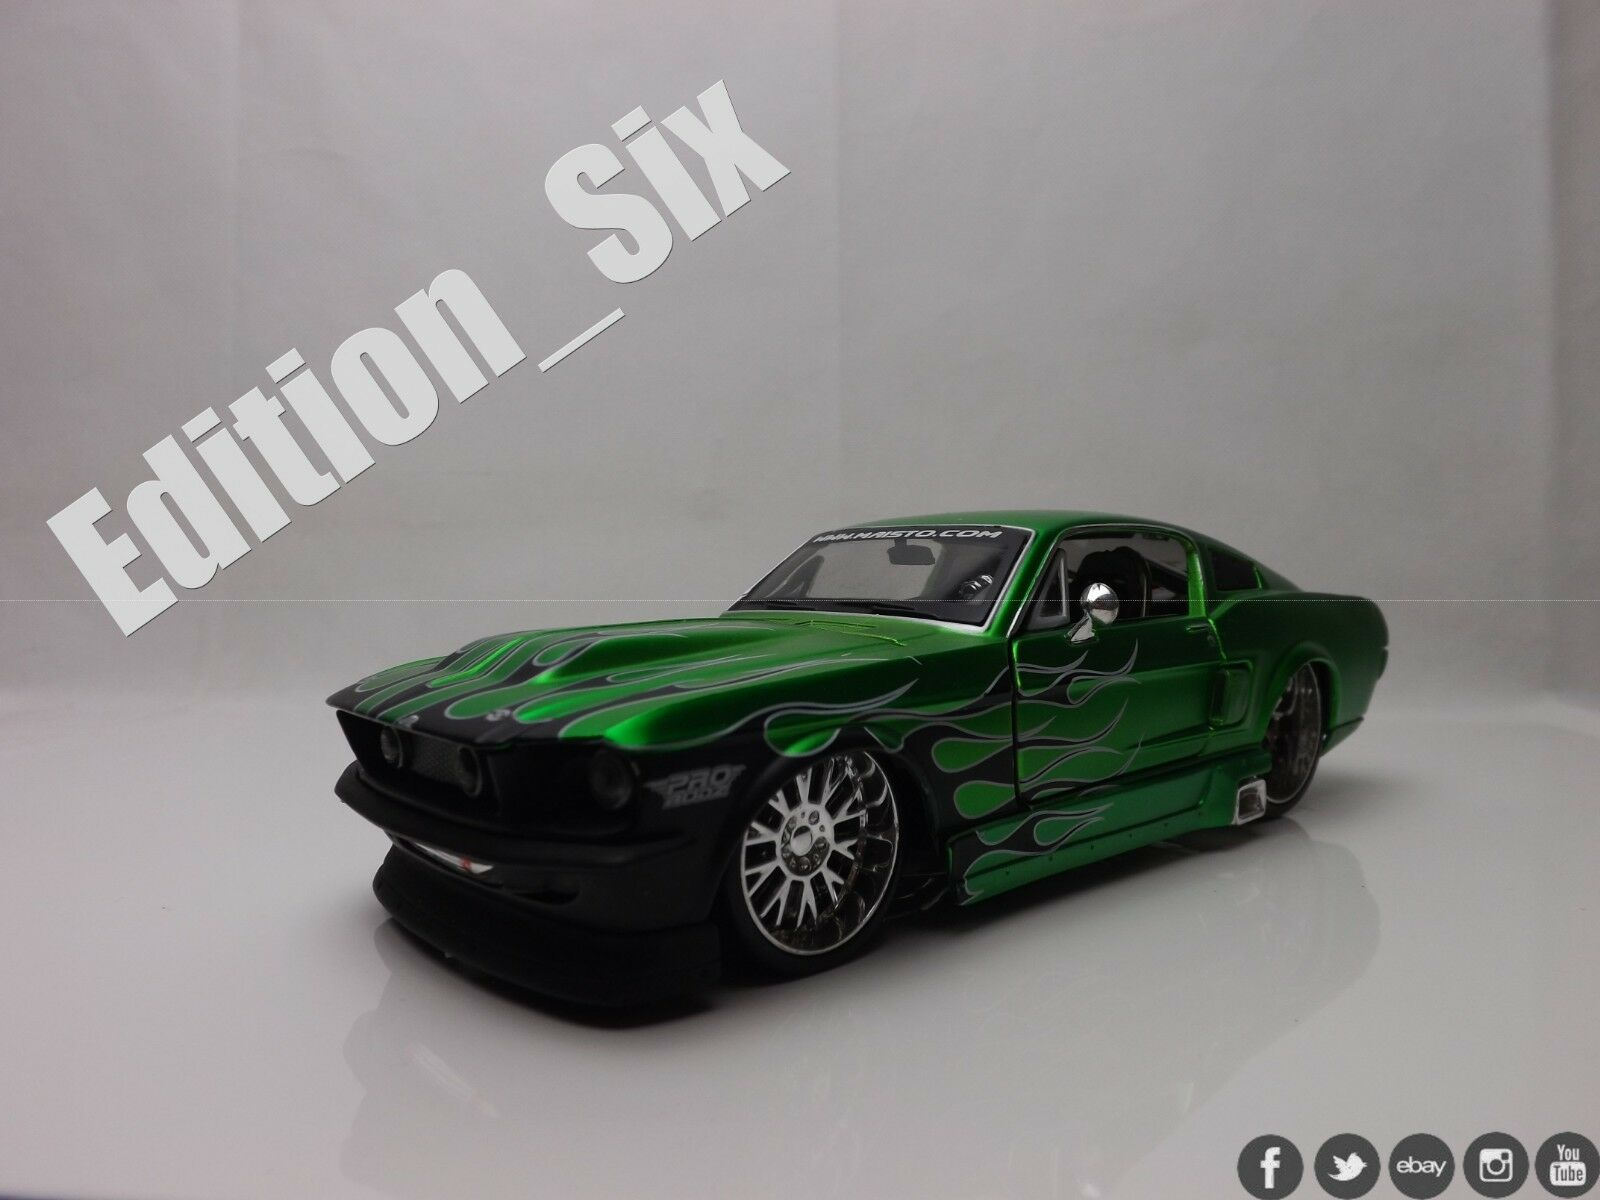 Maisto 1 24 1967 Ford Mustang GT Green HotRod American Muscle sports car